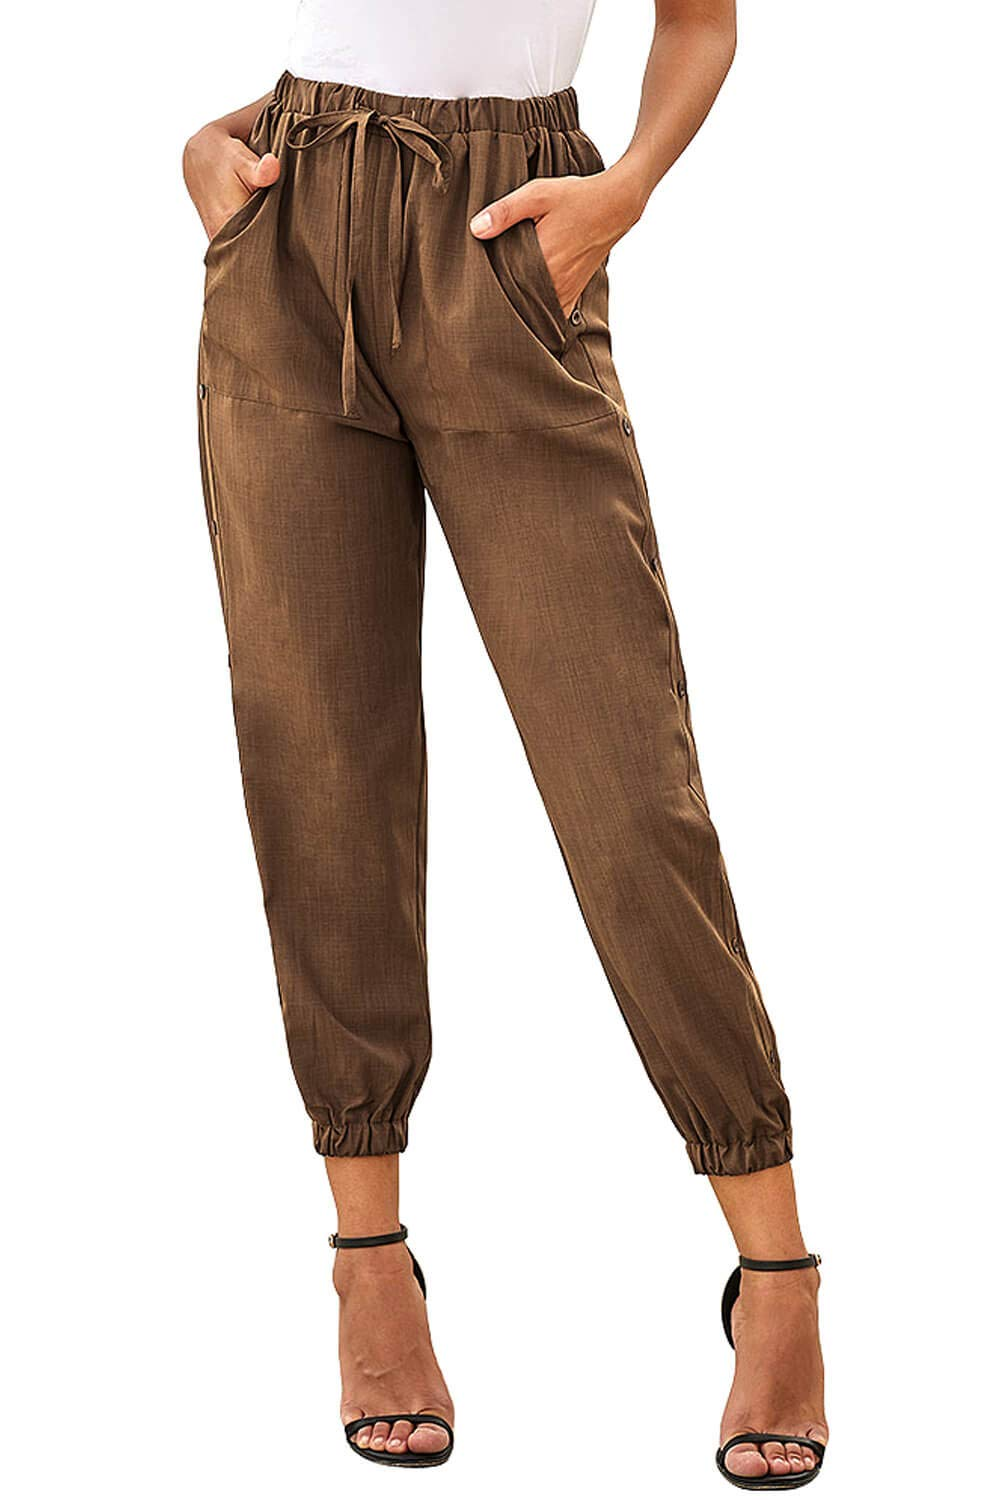 NEWFANGLE Women's Linen Casual Pants Drawstring Elastic Waist with Pockets Solid Comfy Loose Fit Trousers,Brown,L